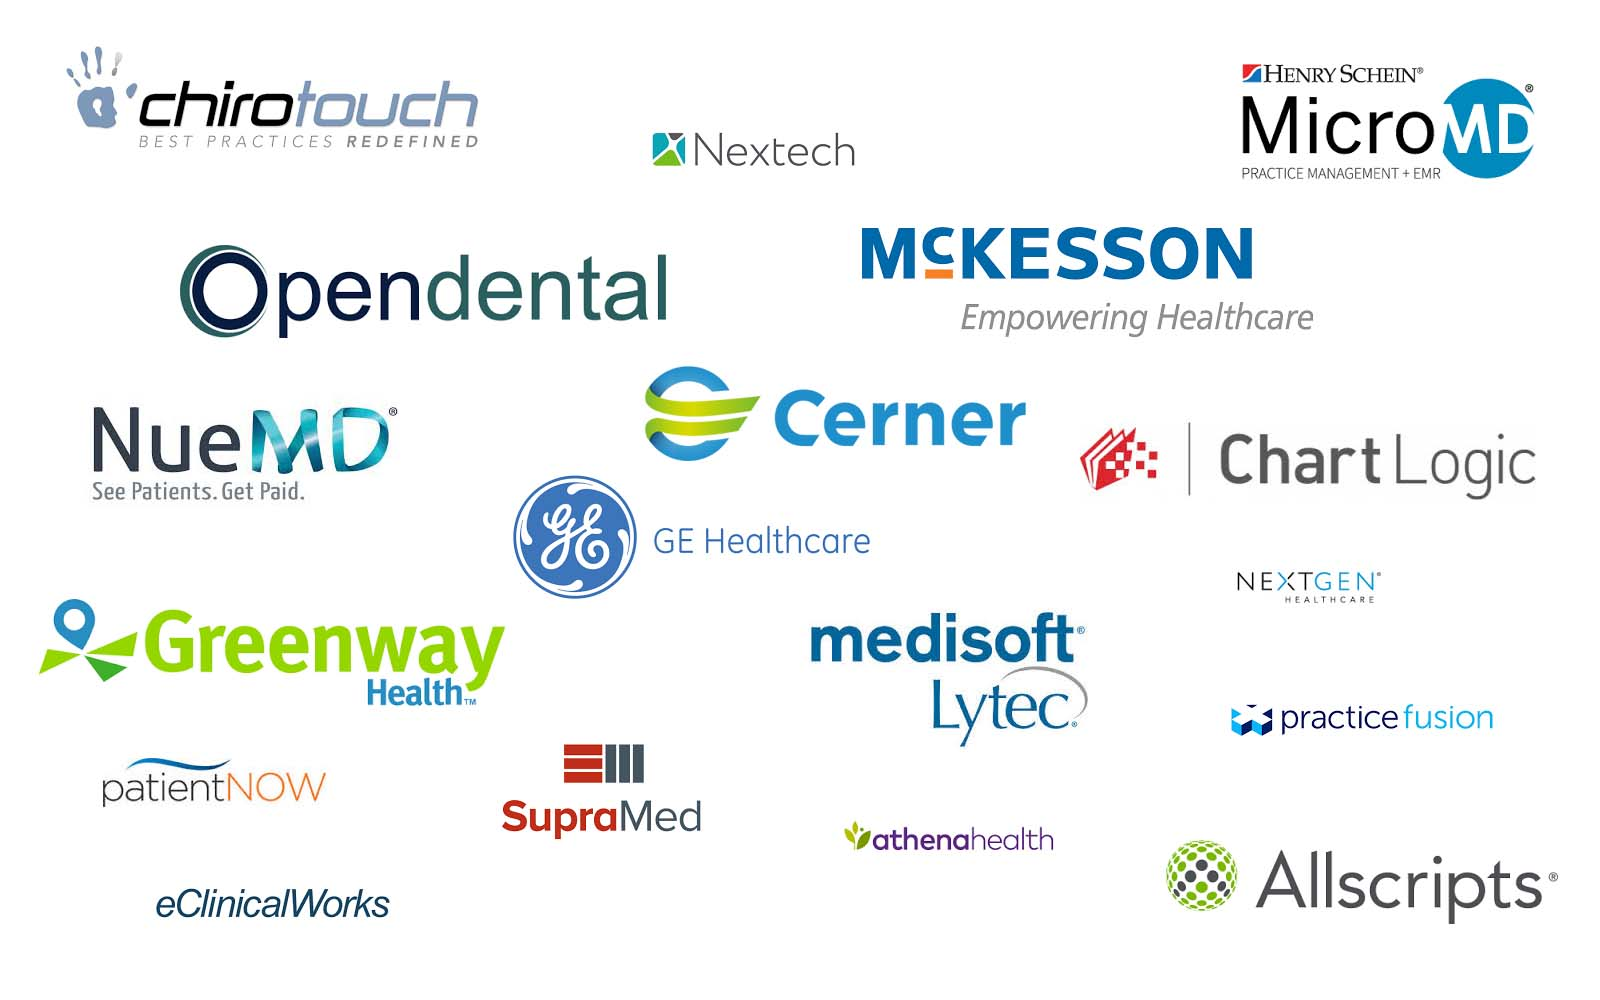 SMARTMD works with many EHR and EMRs